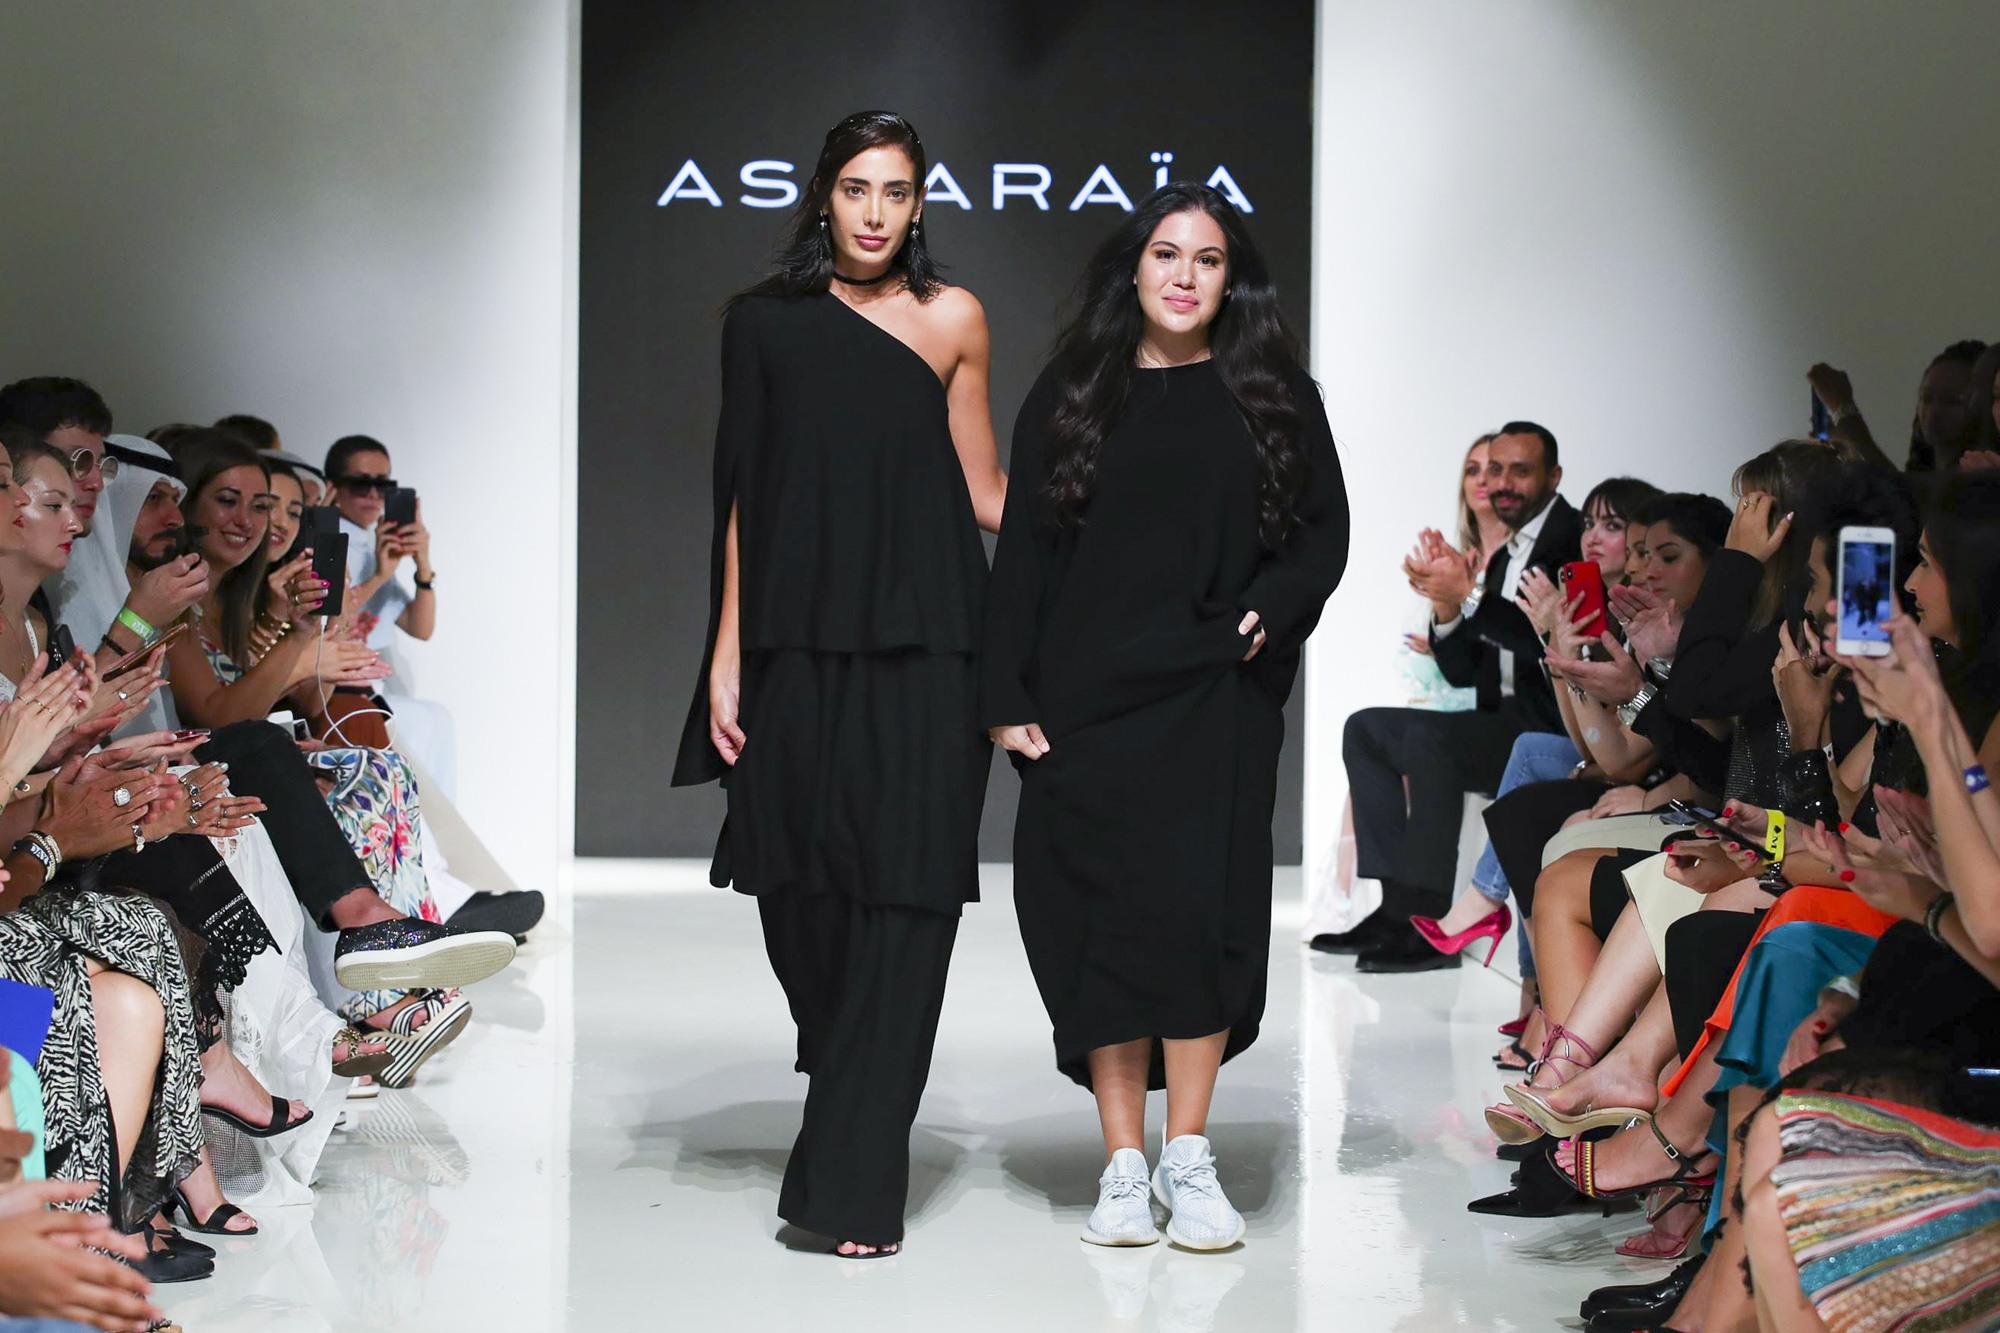 Asmaraia fashion show, Arab Fashion Week collection Spring Summer 2020 in Dubai